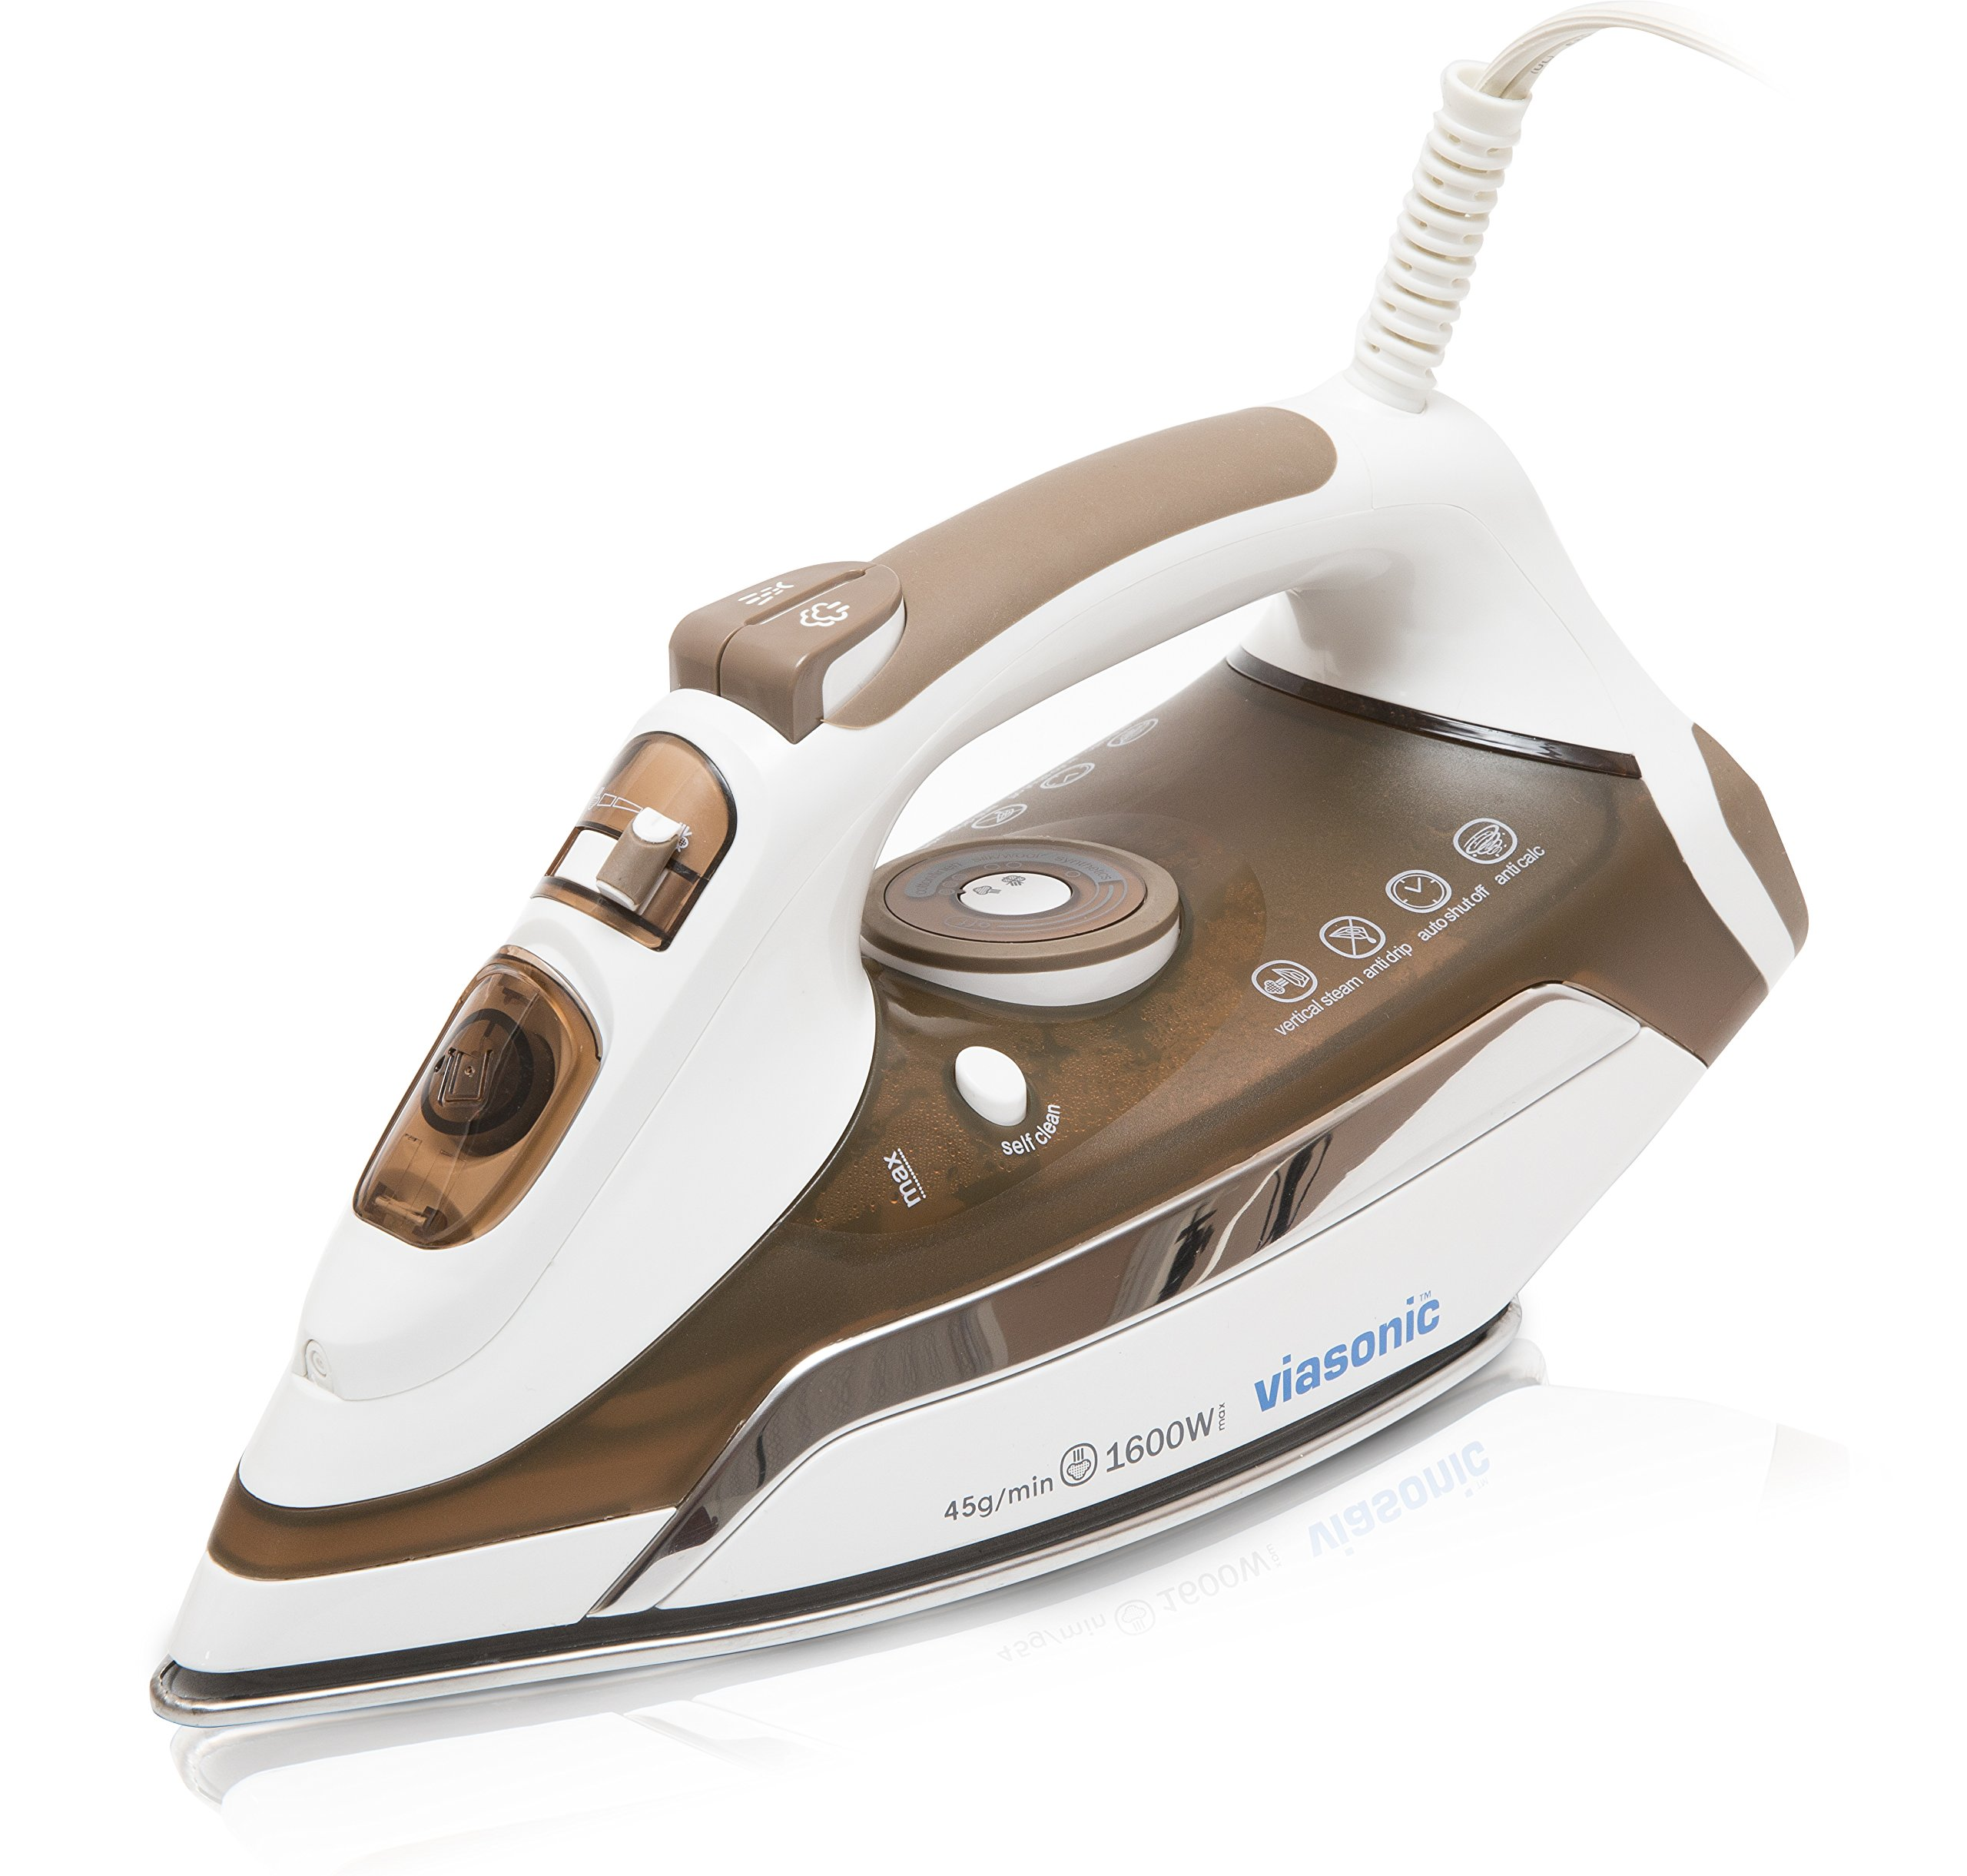 Viasonic Executive Steam Iron 1600W, Auto-Off - Anti-Drip & Self-Cleaning, Anti-Calcium, Vertical Steam, Stainless Steel Soleplate, XL 350ML Tank - Steam, Spray, & Dry Functions - ETL Listed, by Unity